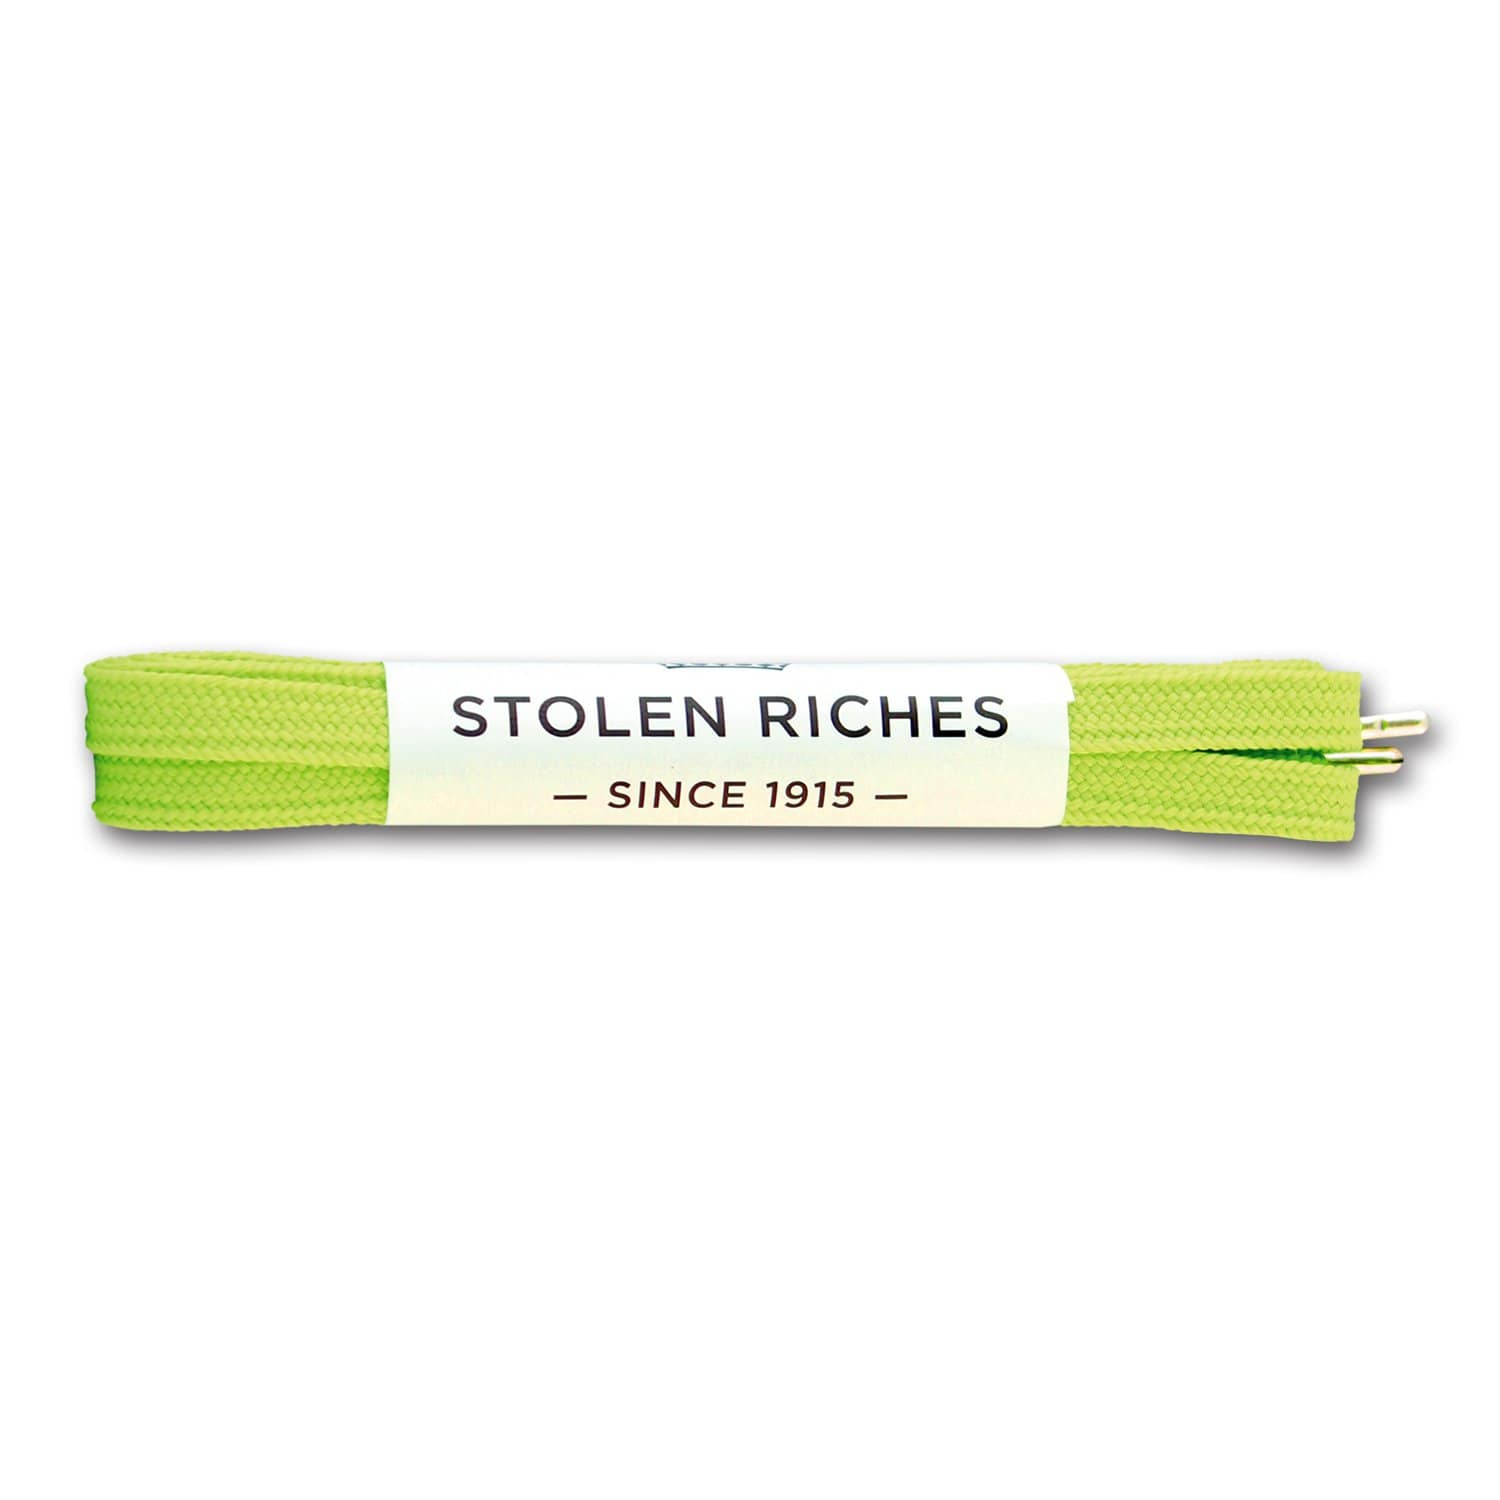 "Neon green laces for sneakers (Length: 45""/114cm) - Stolen Riches"